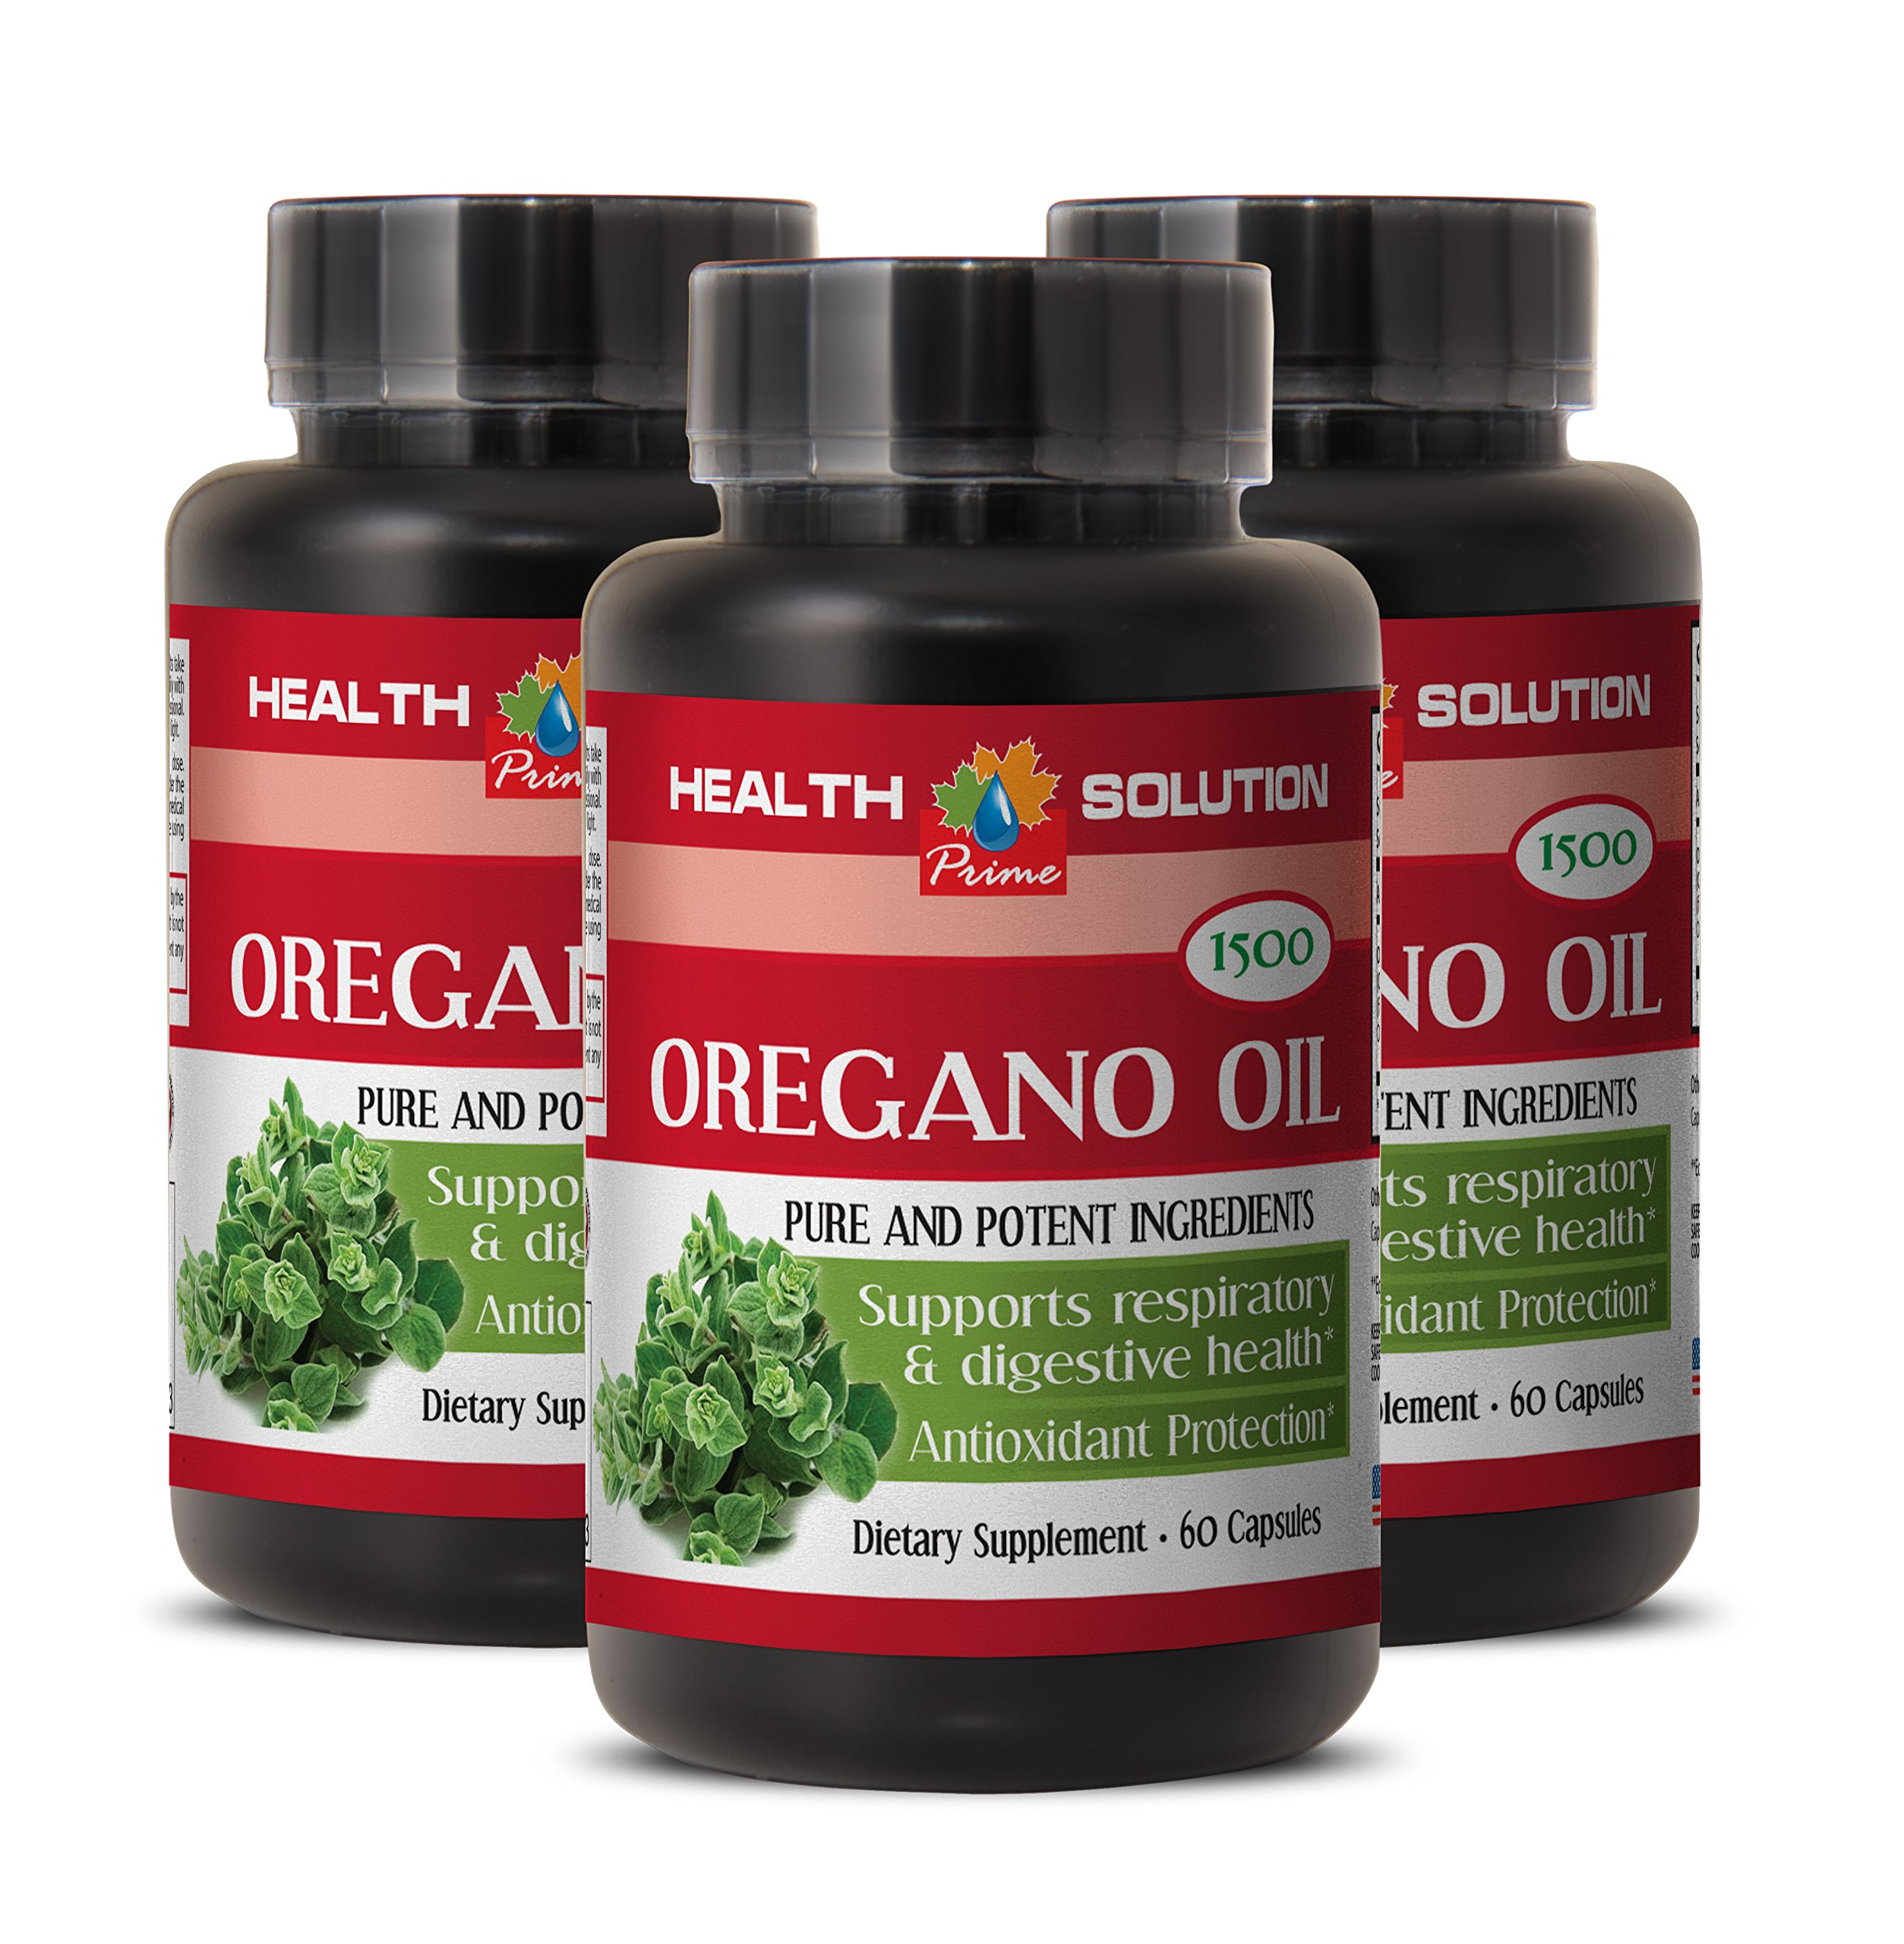 Digestive aid - OREGANO OIL EXTRACT (PURE AND POTENT INGREDIENTS) - Mediterranean diet - 3 Bottles 180 Capsules by Health Solution Prime